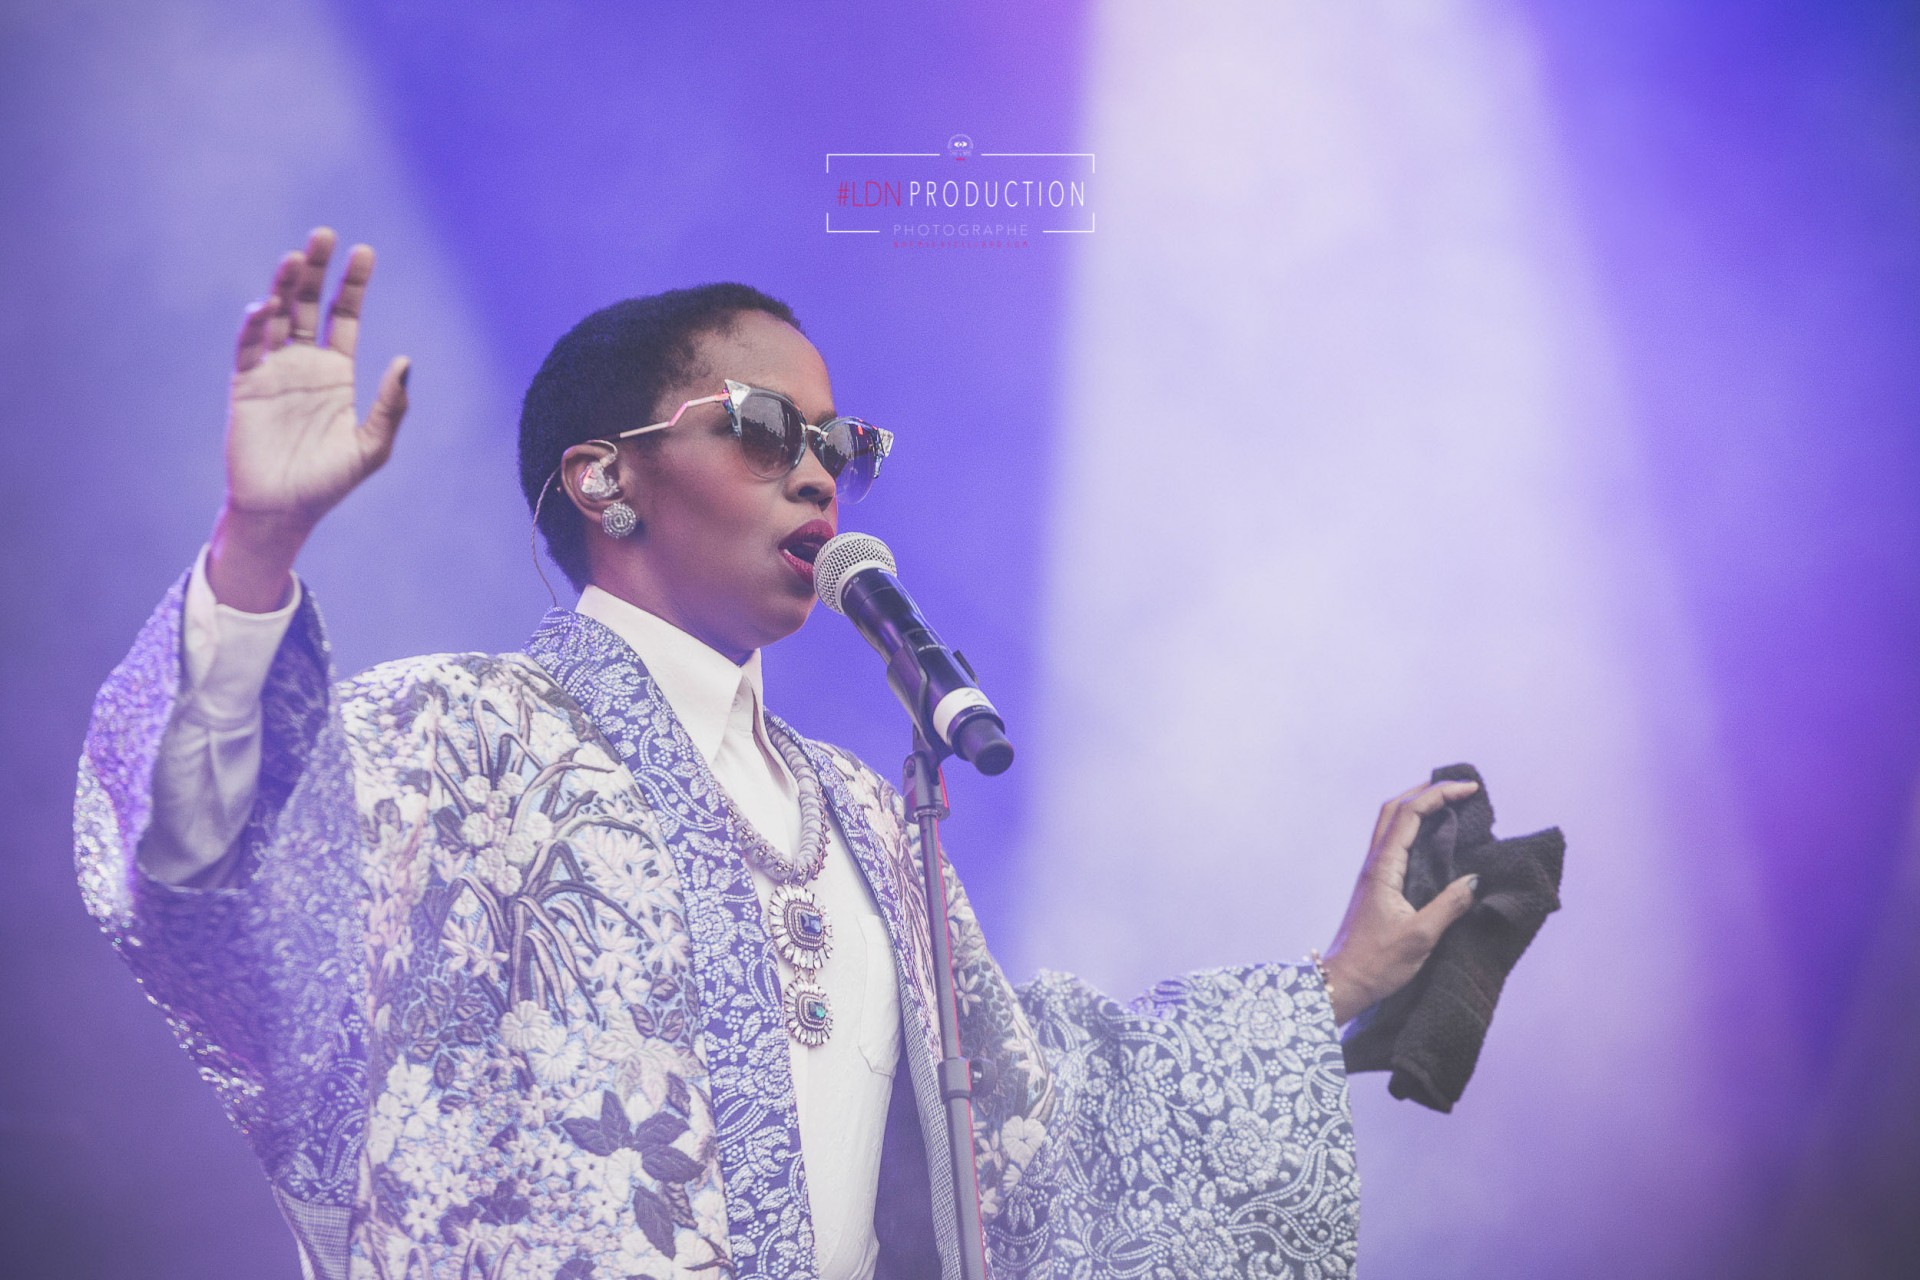 photo-ms-lauryn-hill-fugees-hip-hop-usa-soul-festival-papillons-de-nuit-normandie-noemie-vieillard-21